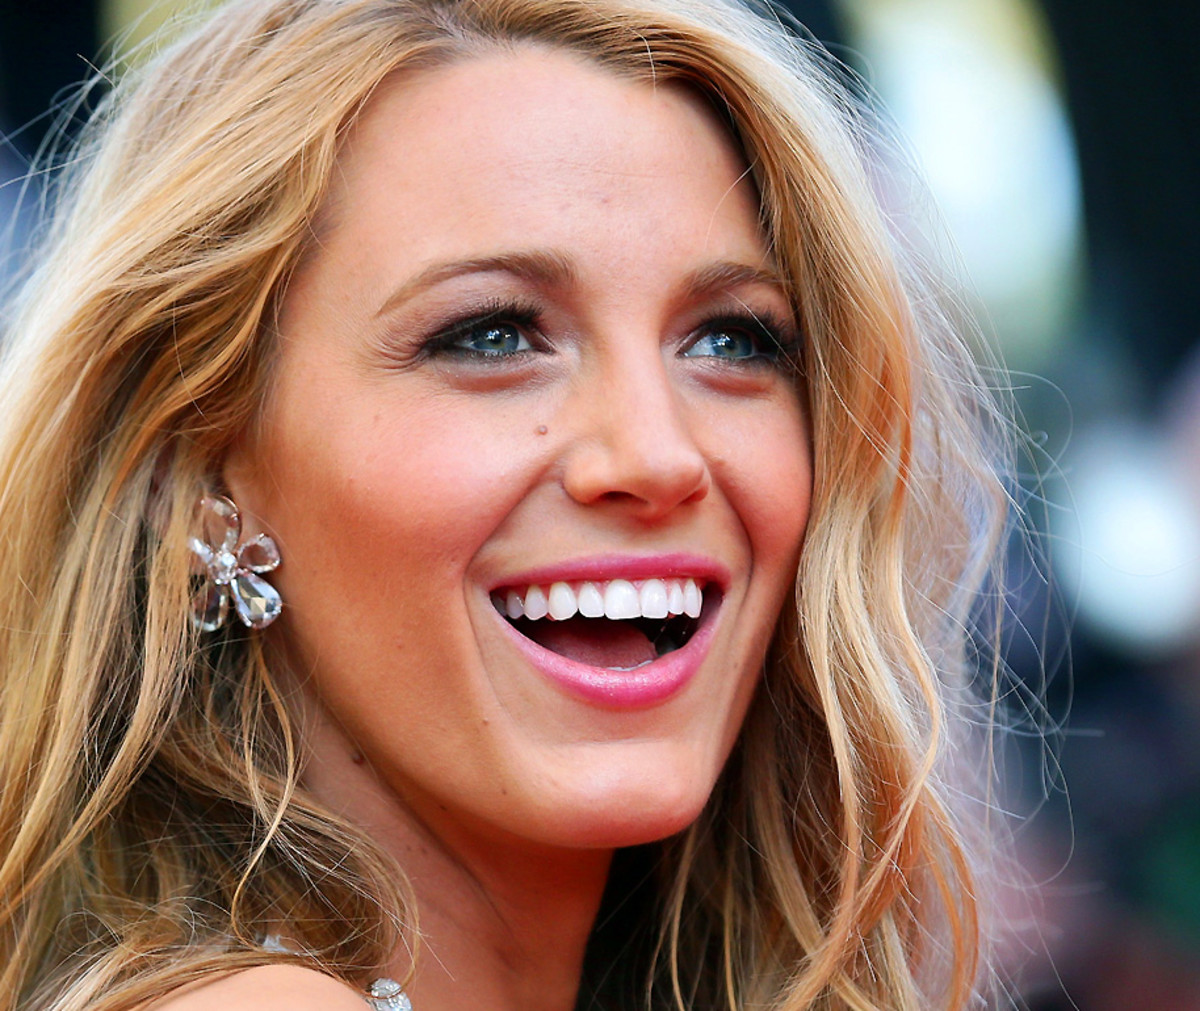 Blake Lively Totally Wins The Red Carpet Smile Award No